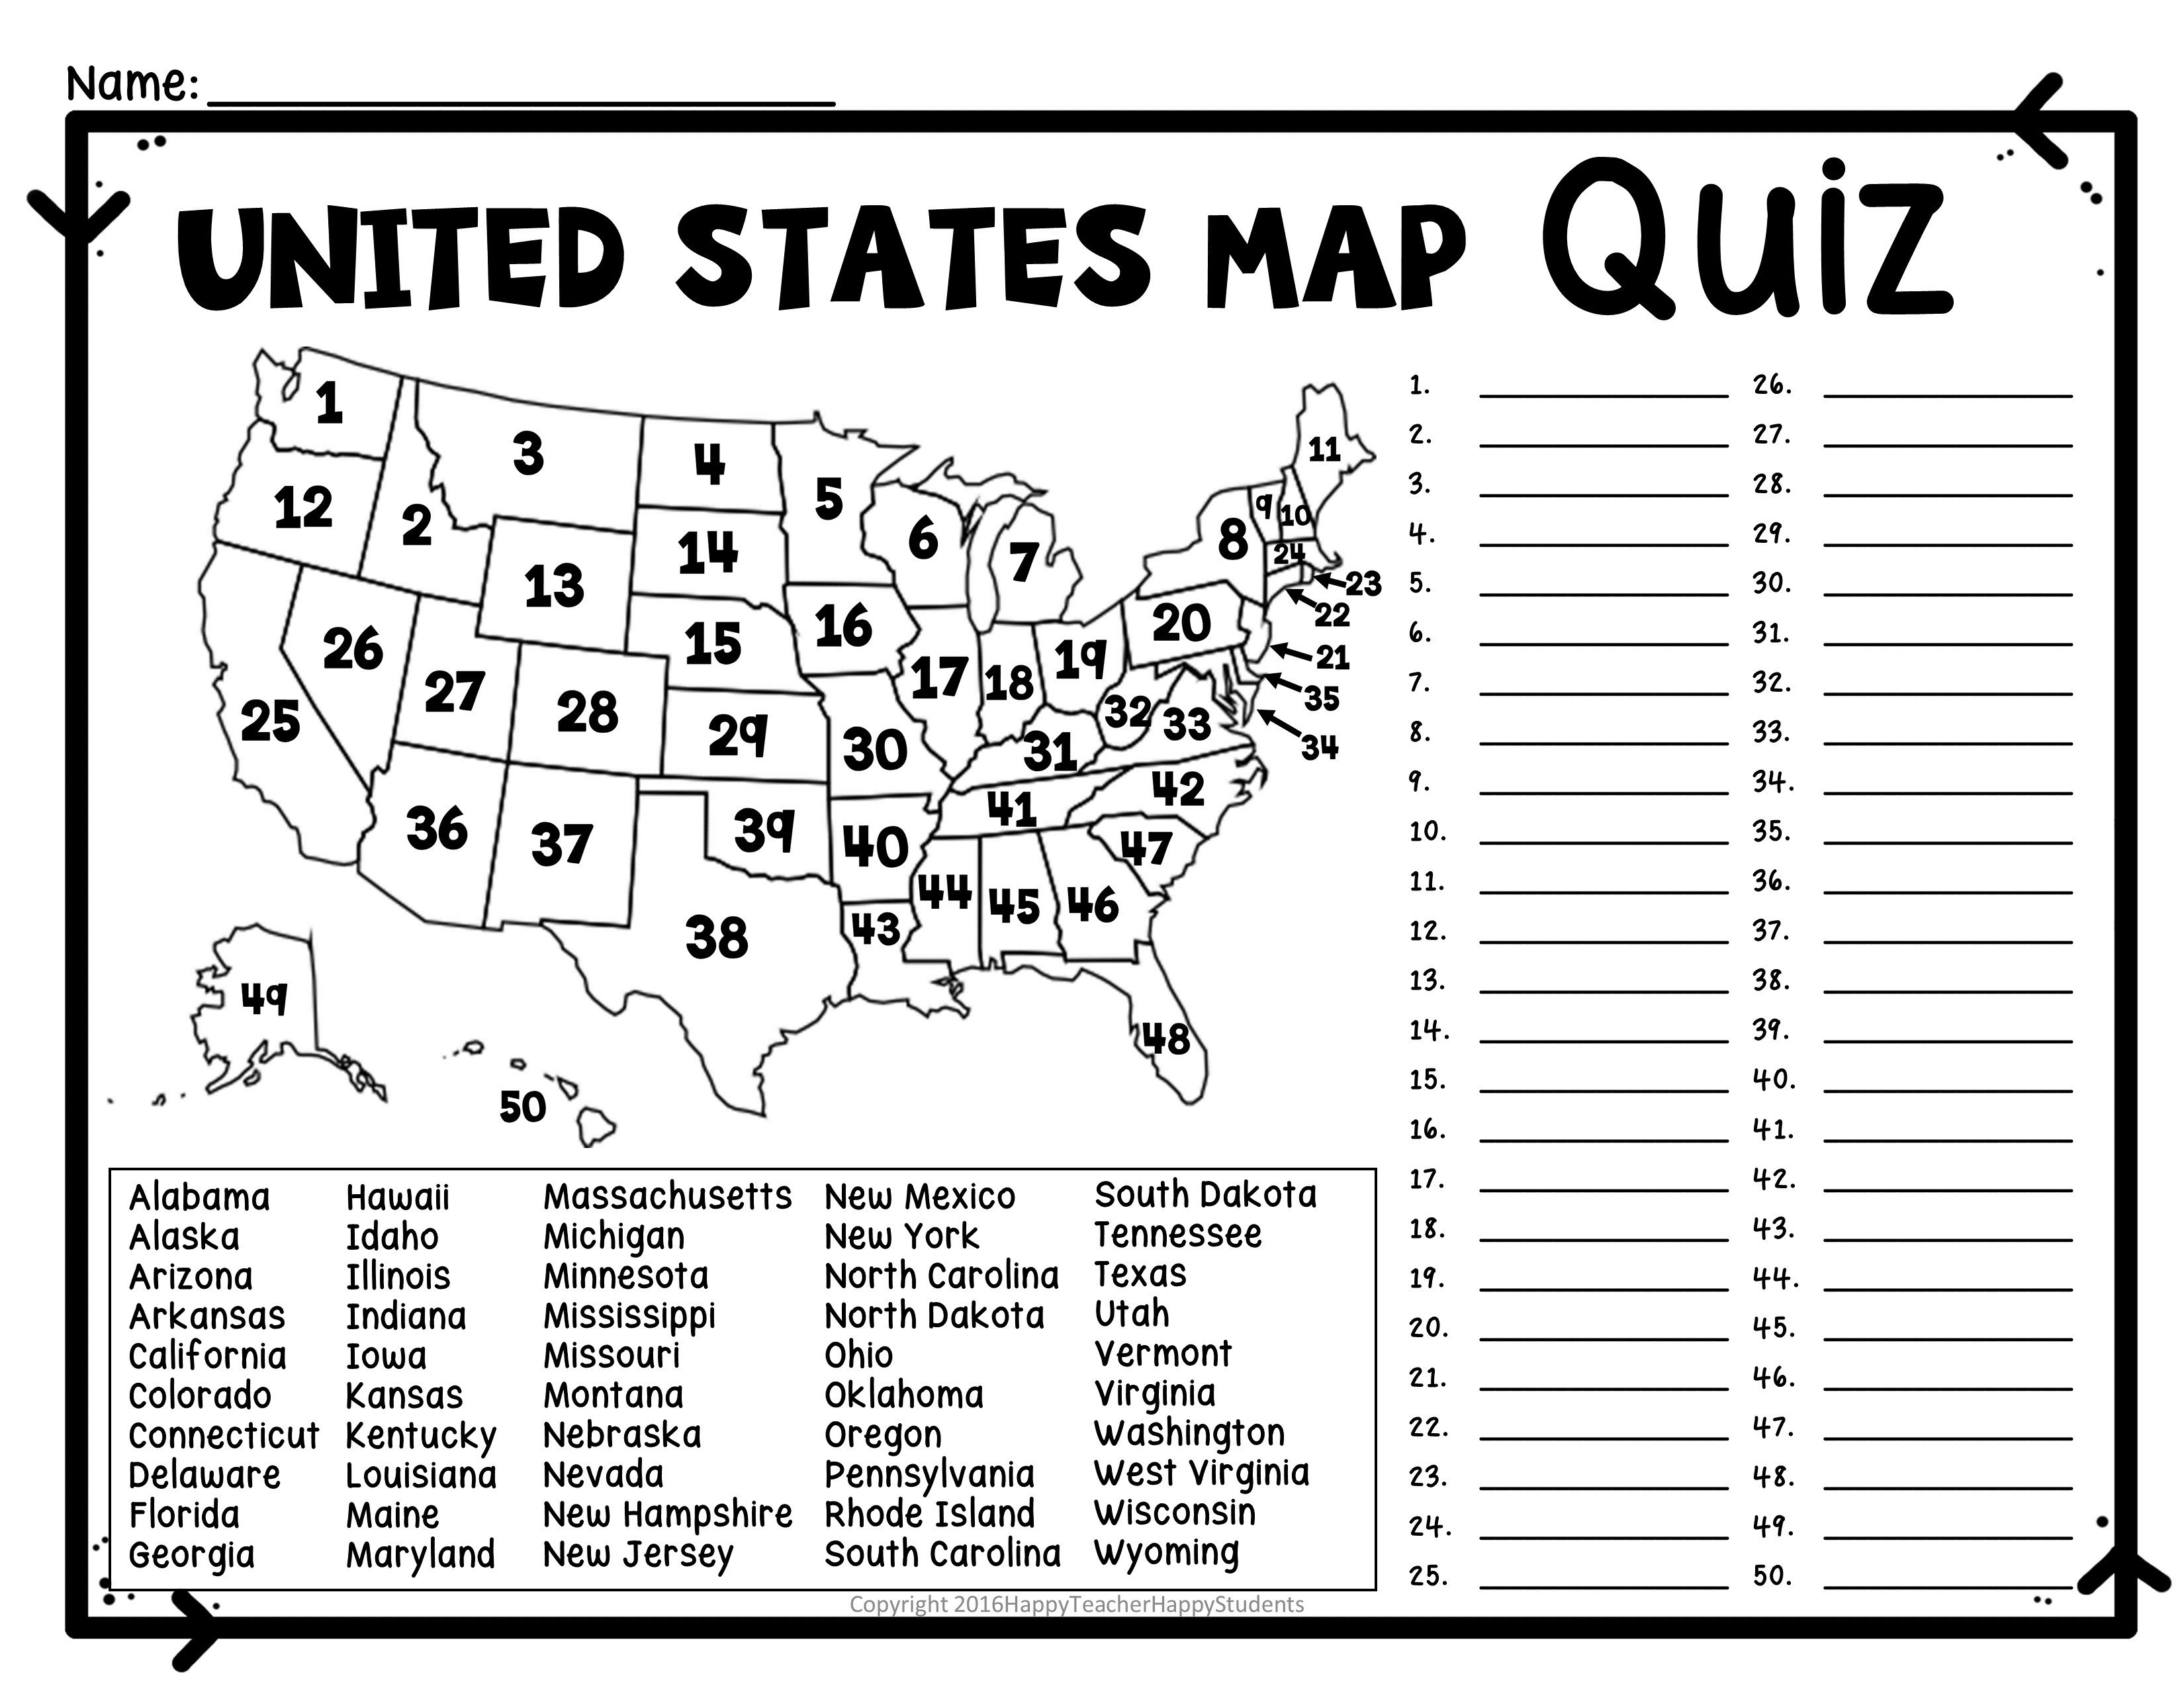 State Capitals Crossword 15 States And Capitals Puzzle - Printable 50 States Crossword Puzzles